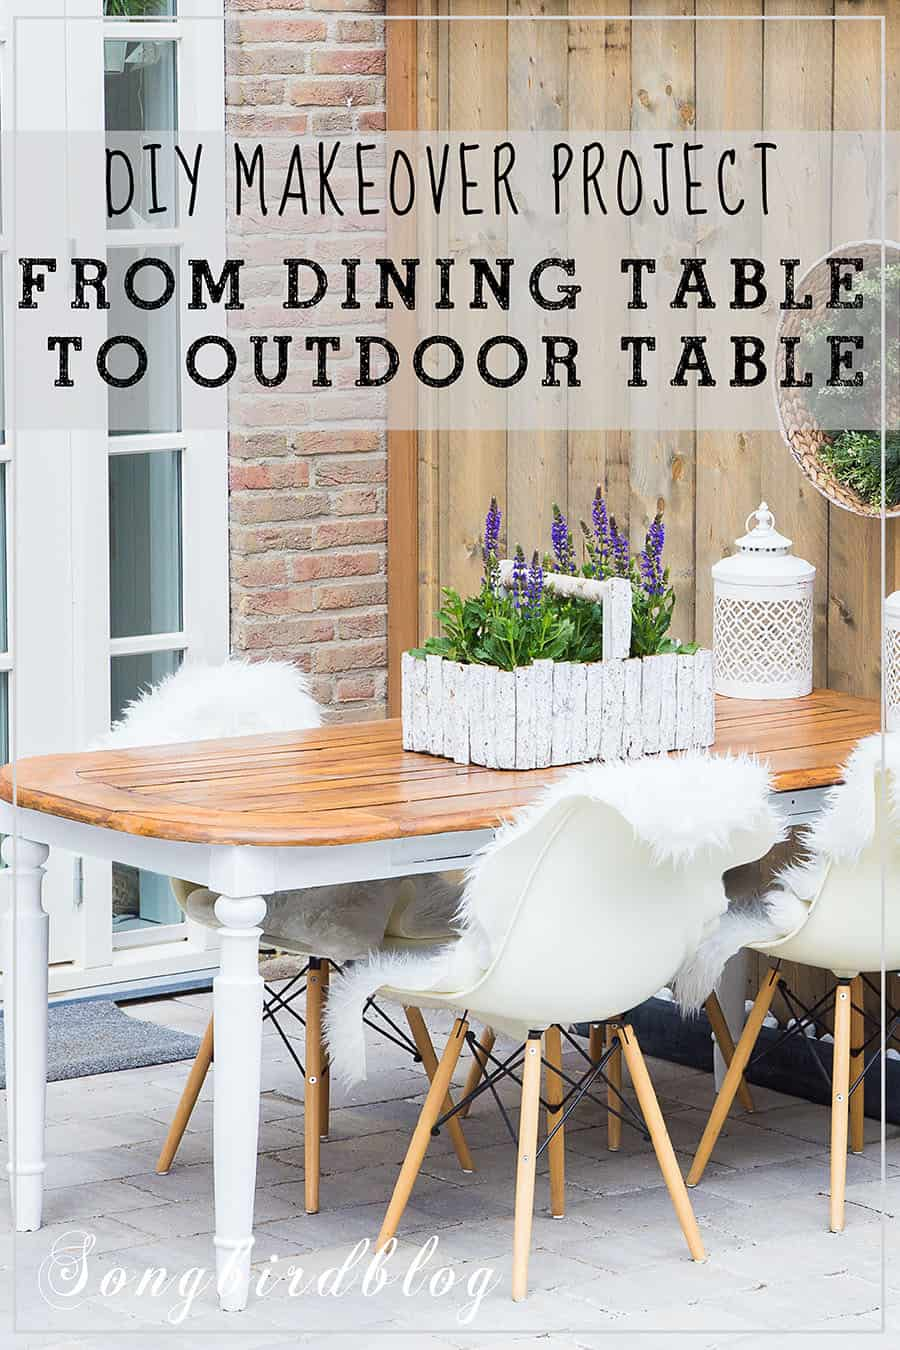 patio with dining table turned into outdoor table